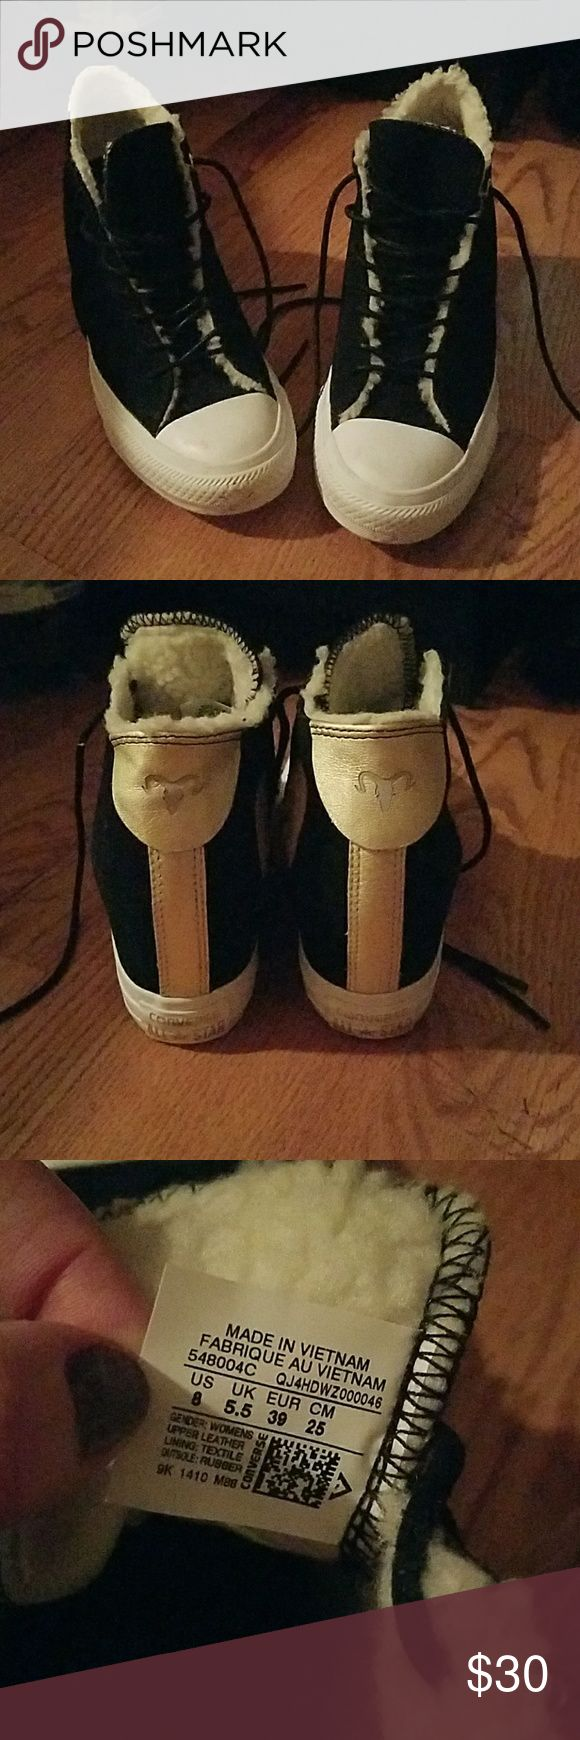 Converse wedge sneakers Black and White...Fuzzy lined....So cute!   Brand new never worn! Converse Shoes Sneakers